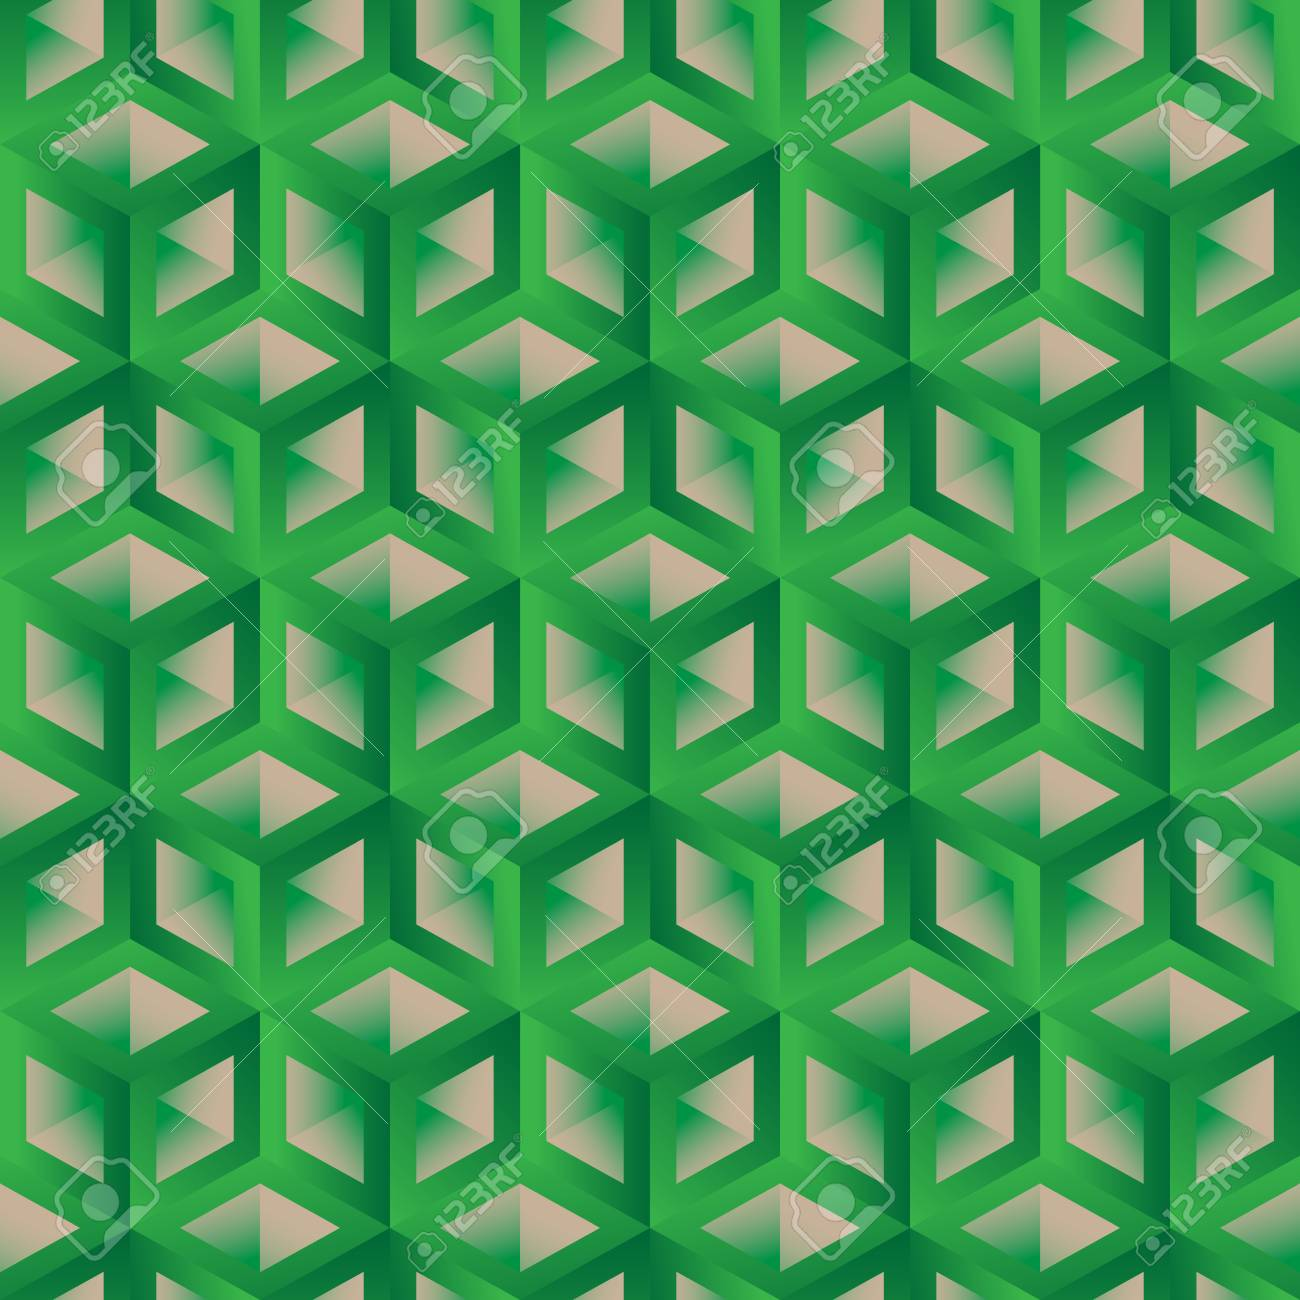 hexagon pattern seamless background 3d lattice with gradient